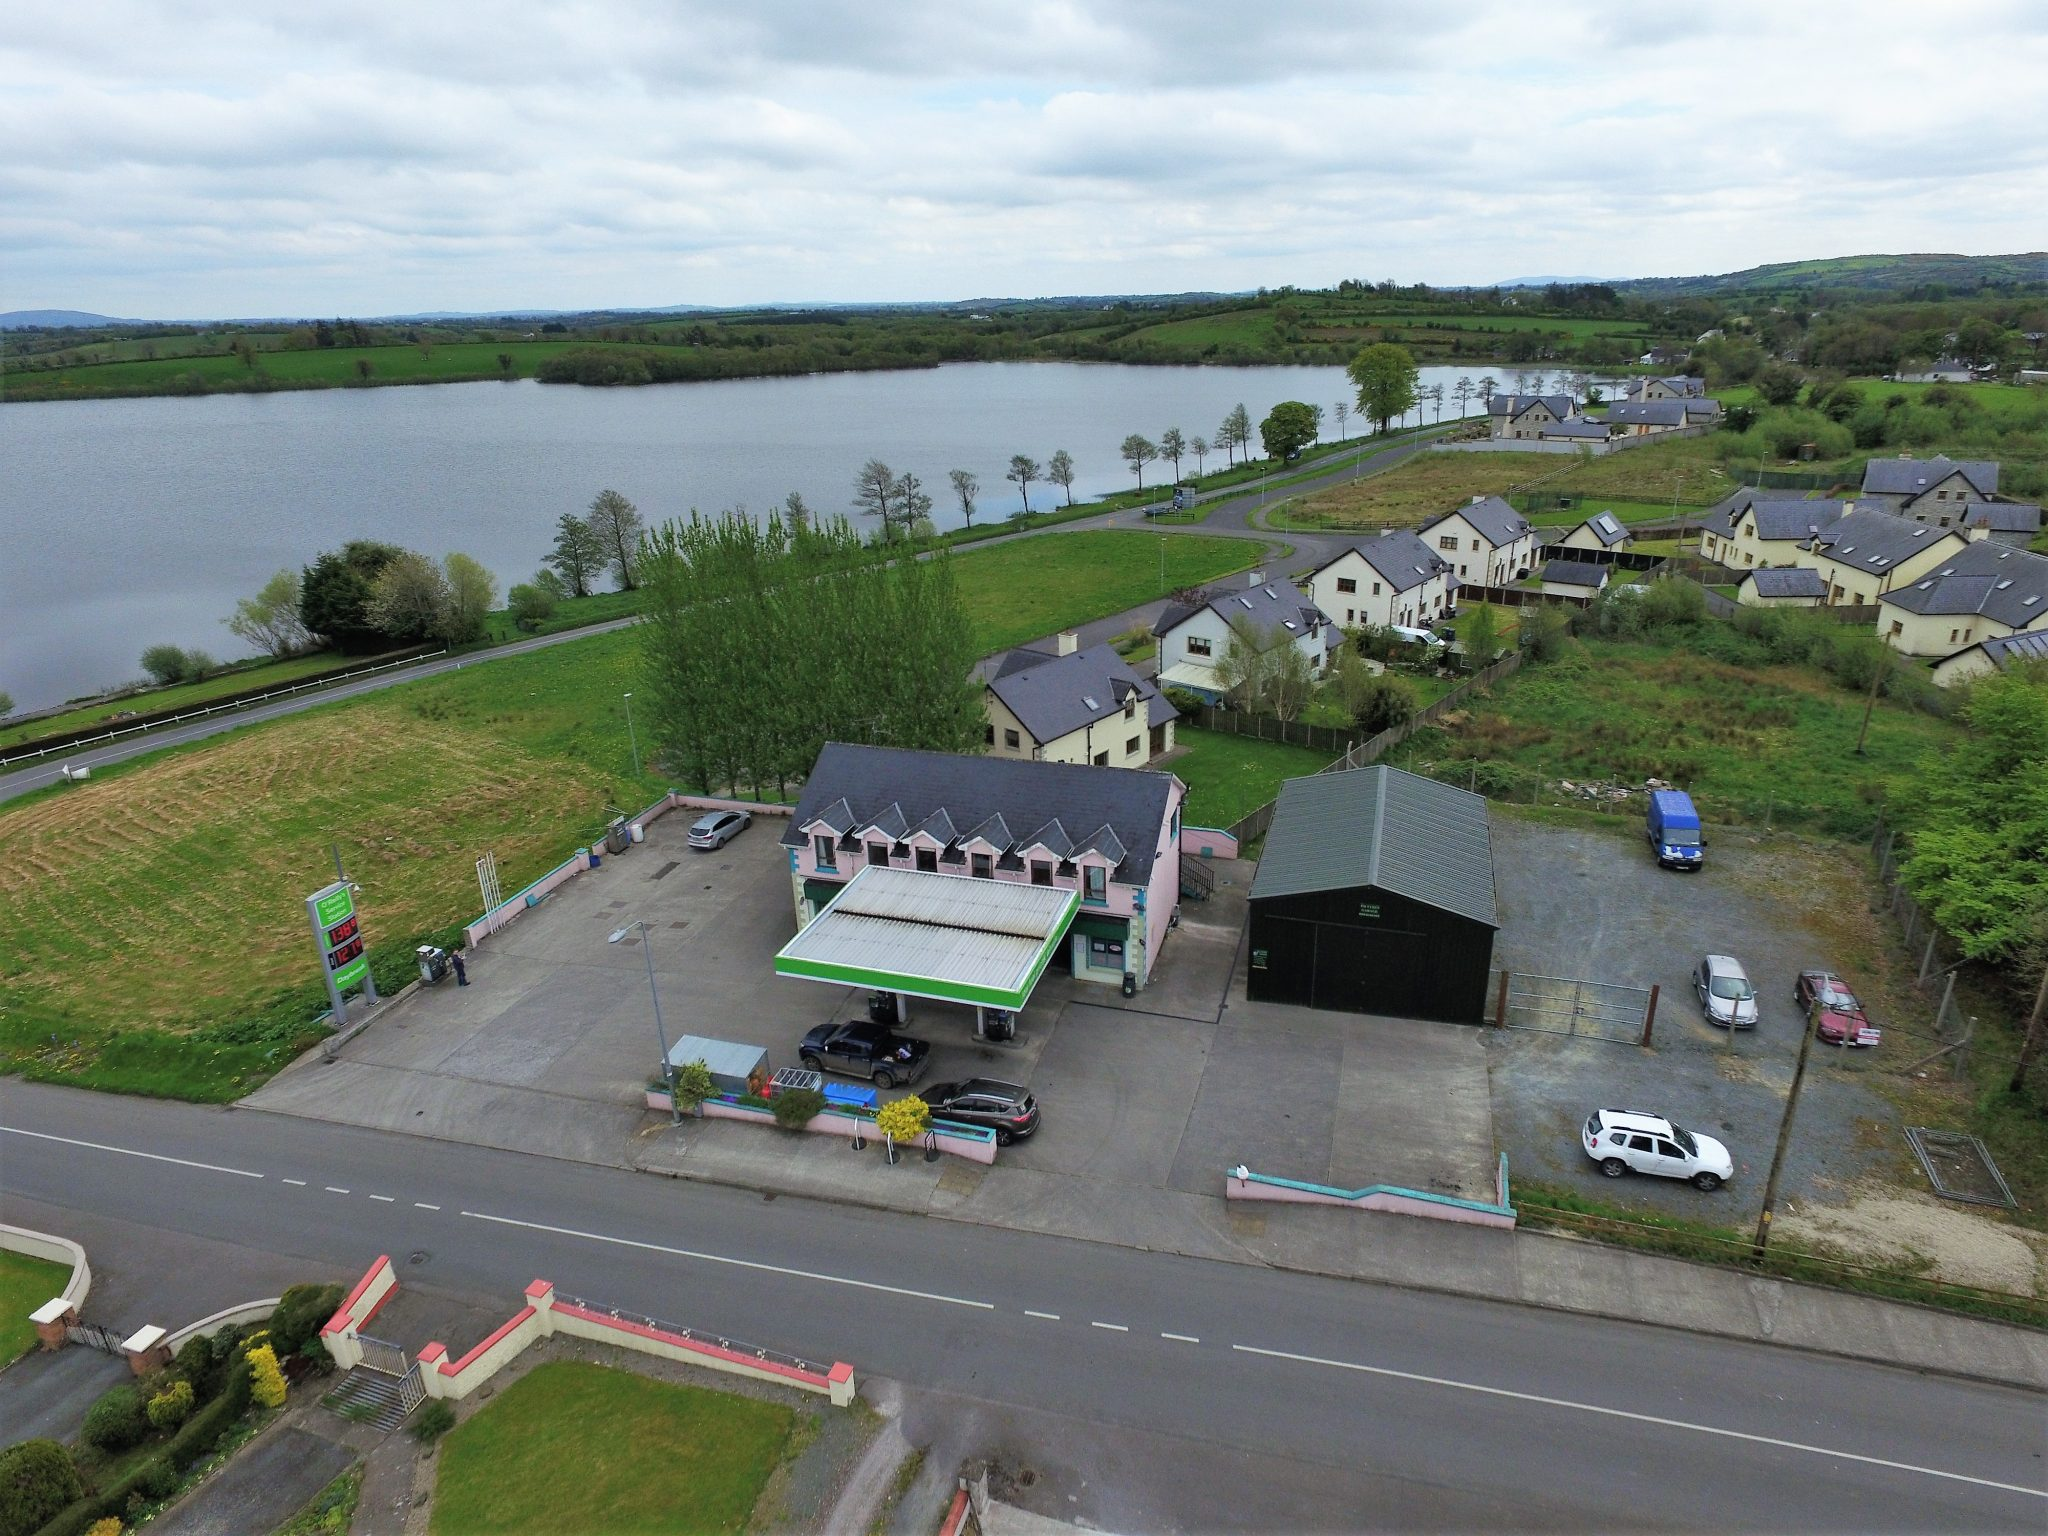 Investment Property For Sale O'Reilly's Service Station